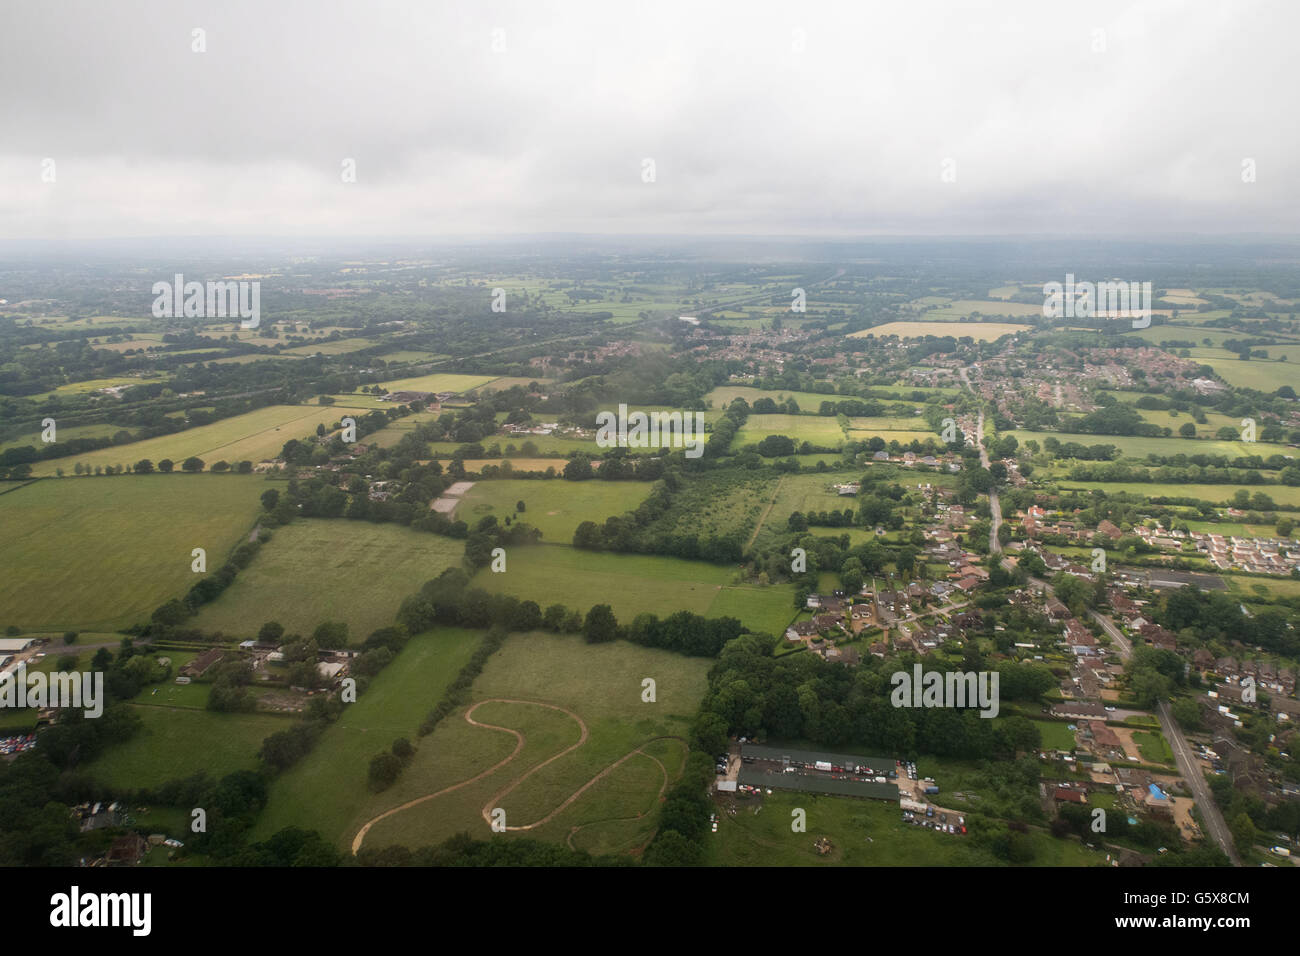 An aerial view of fields and houses on the approach to Gatwick airport, London Stock Photo